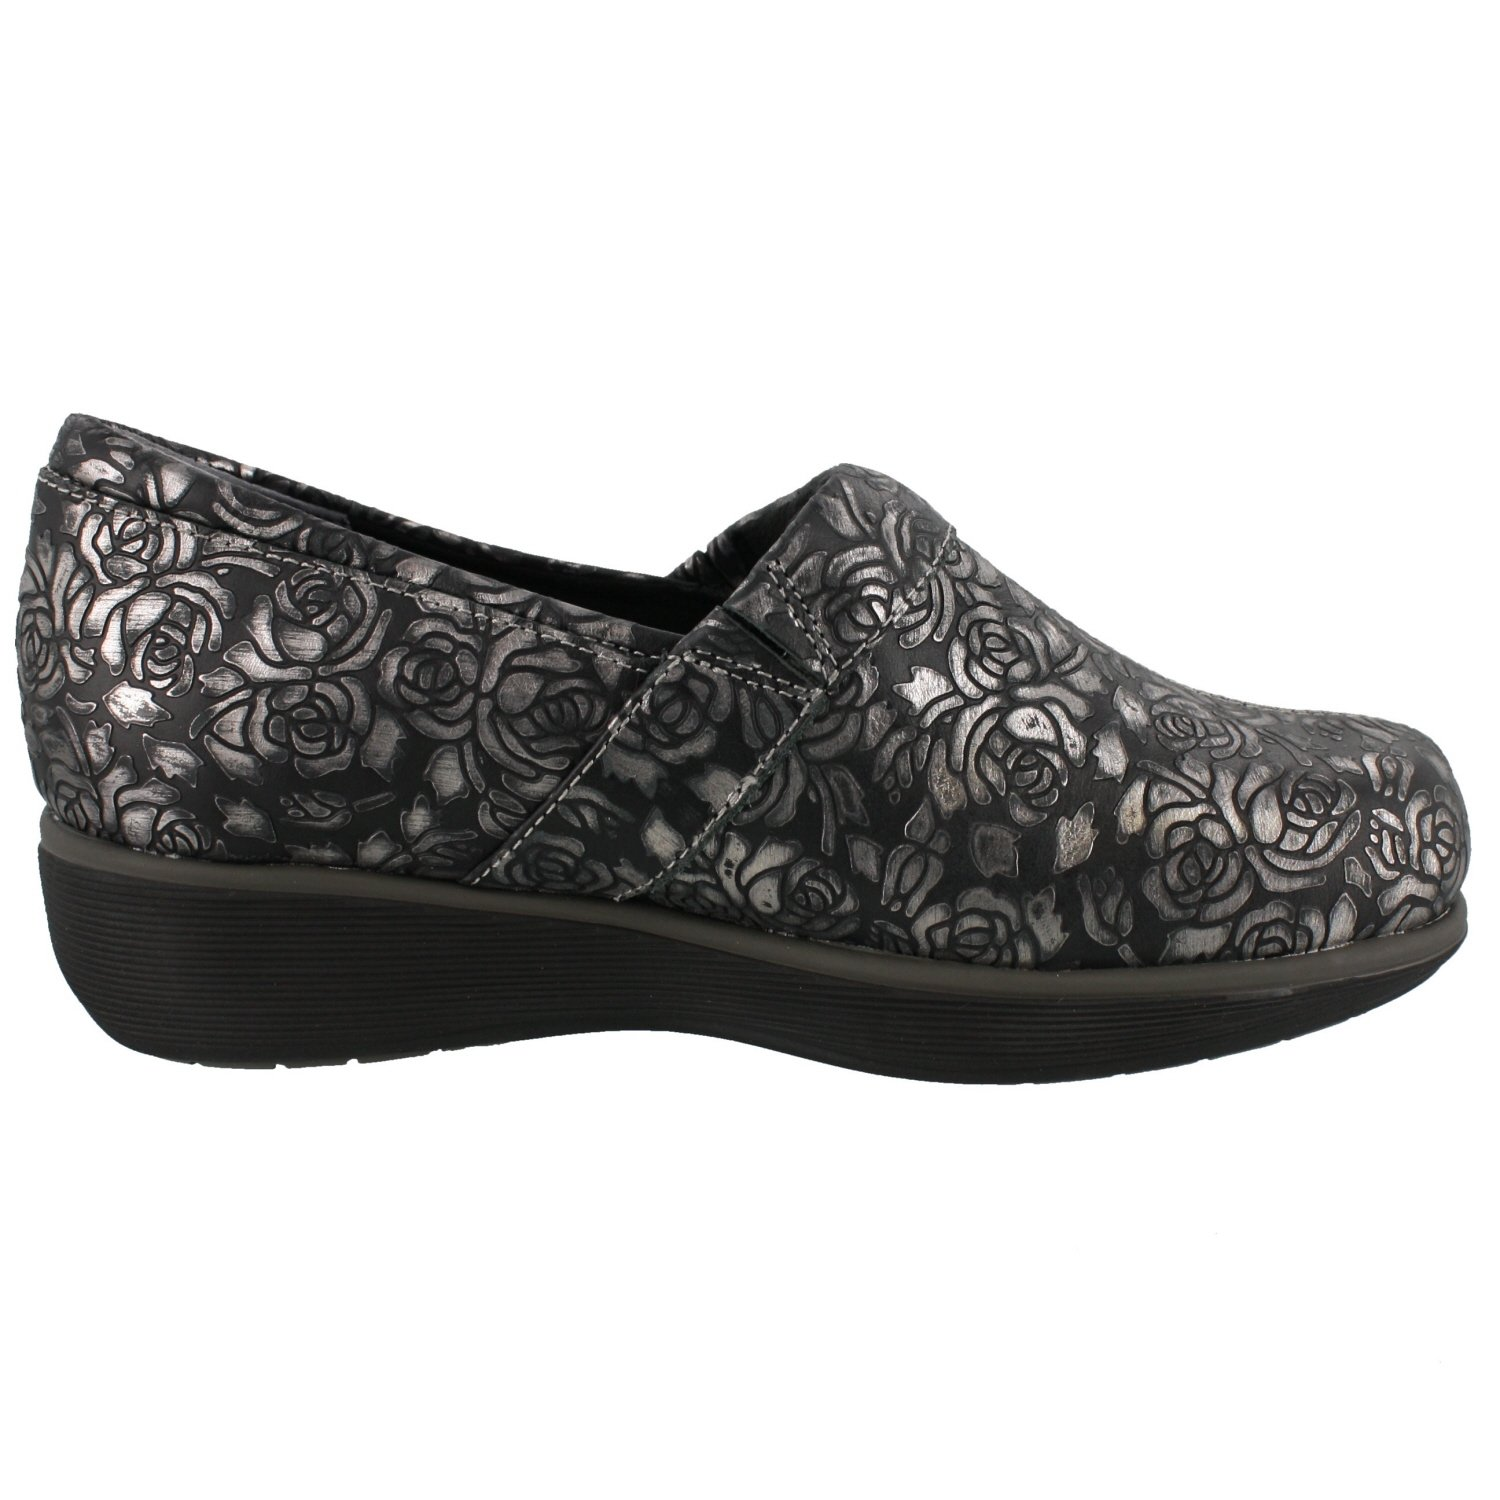 SoftWalk Women's Meredith Clog B01DCO51QS Leather 7.5 B(M) US|Black Metallic Leather B01DCO51QS 61b399